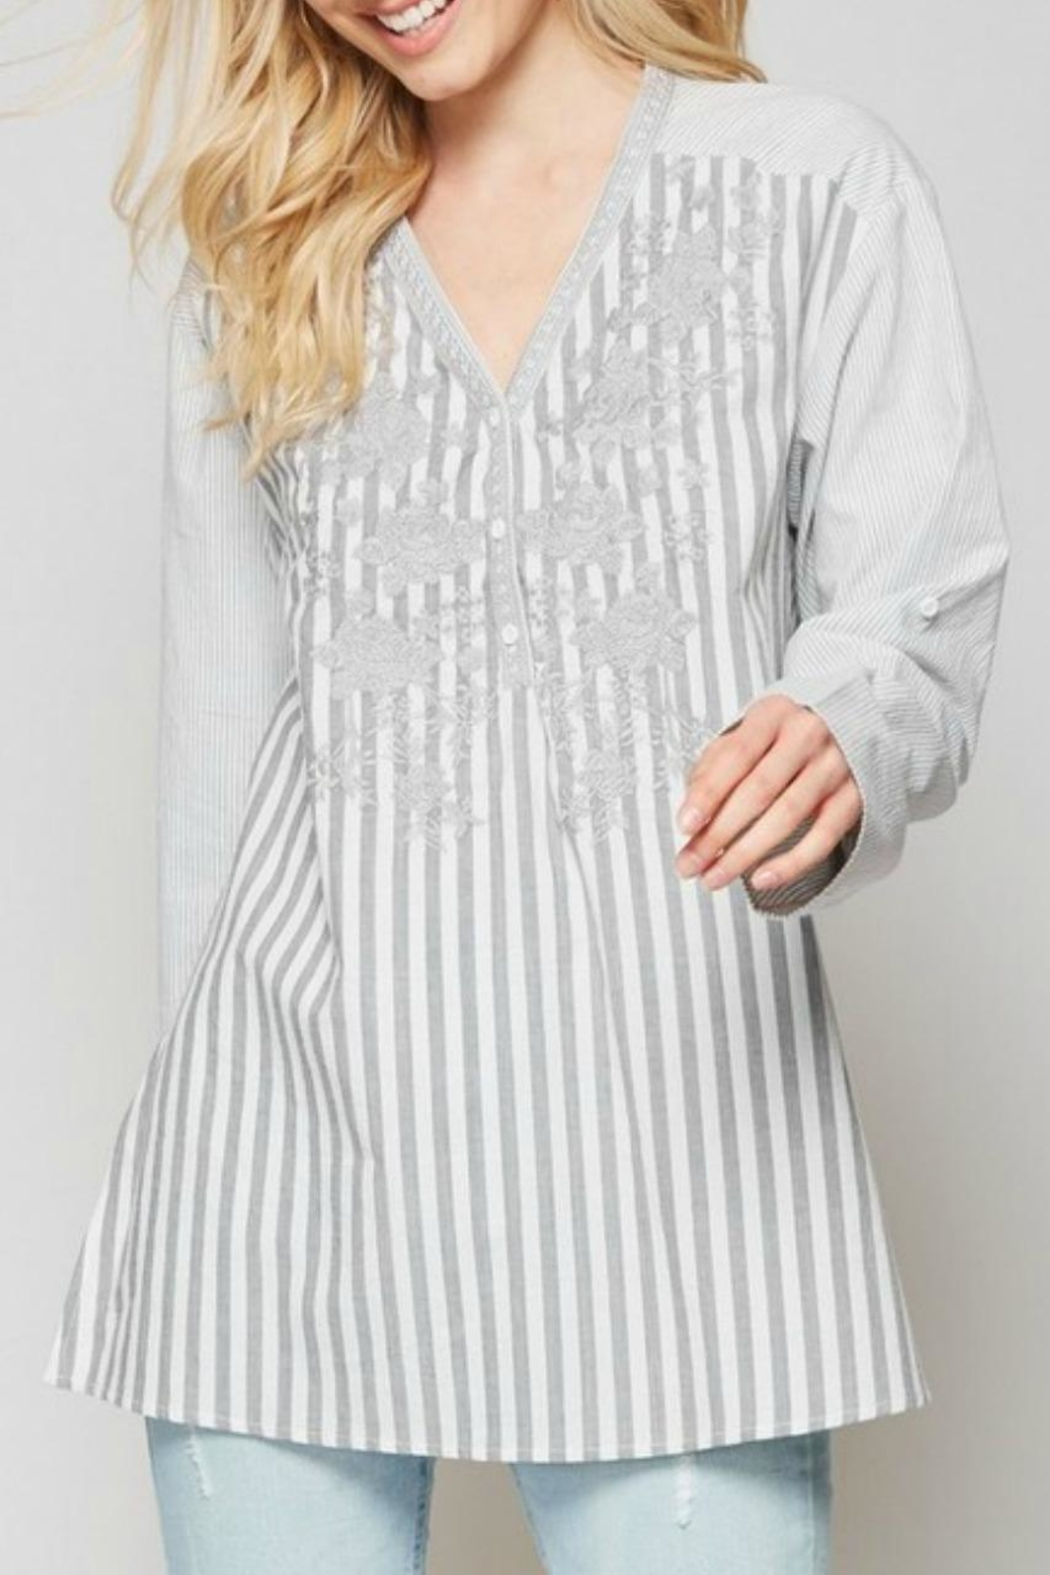 Andree by Unit Striped Embroidered Blouse - Main Image